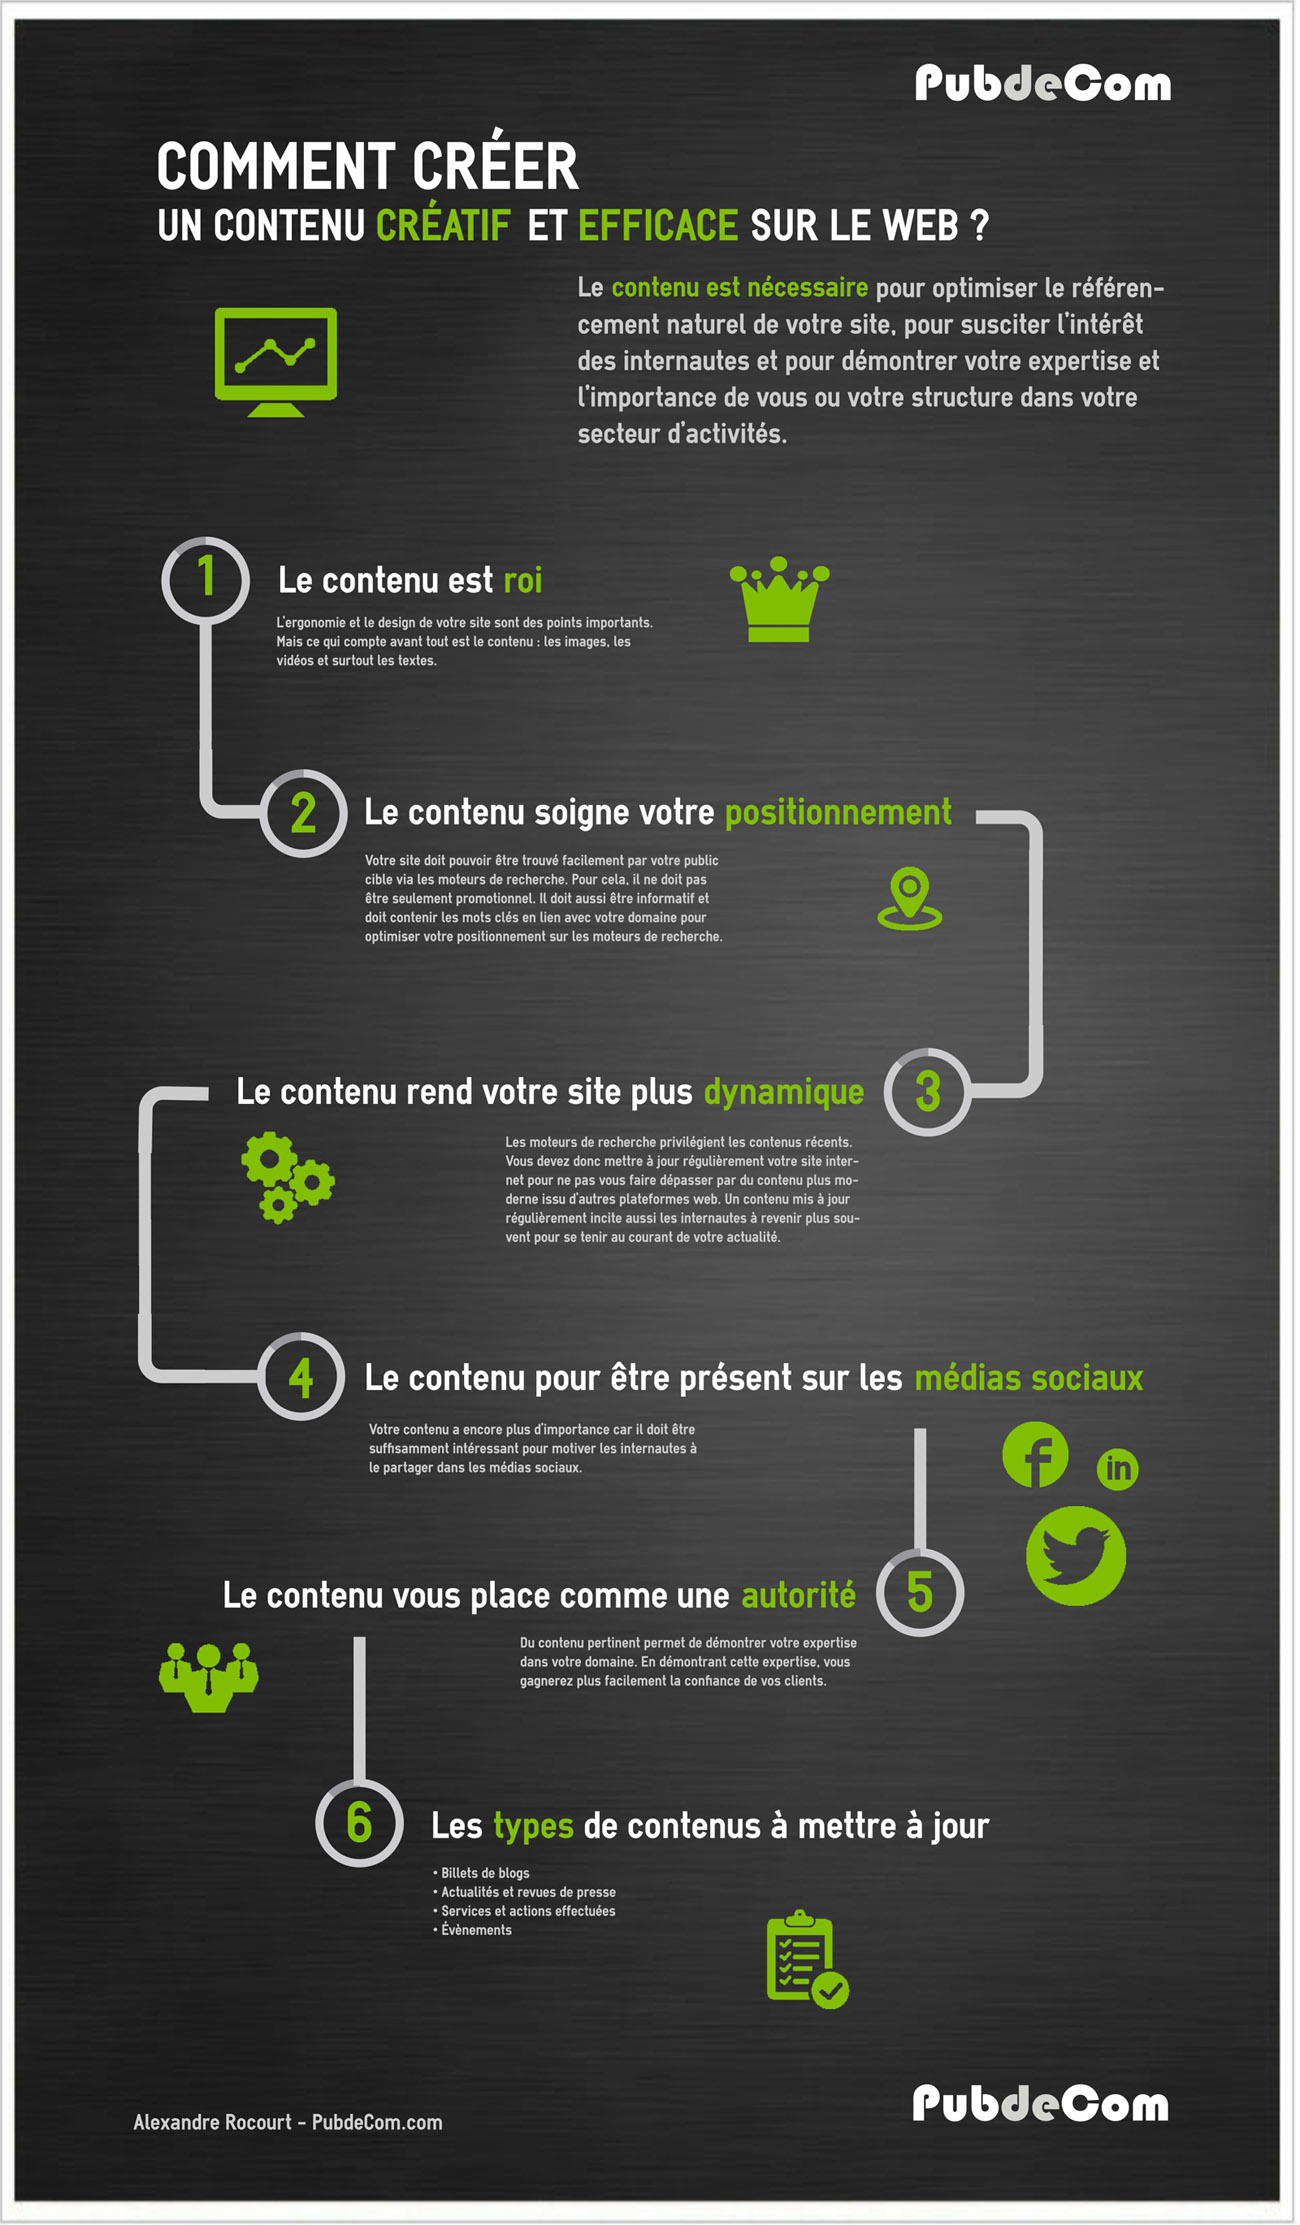 Creer-un-contenu-efficace-sur-le-web - Copie